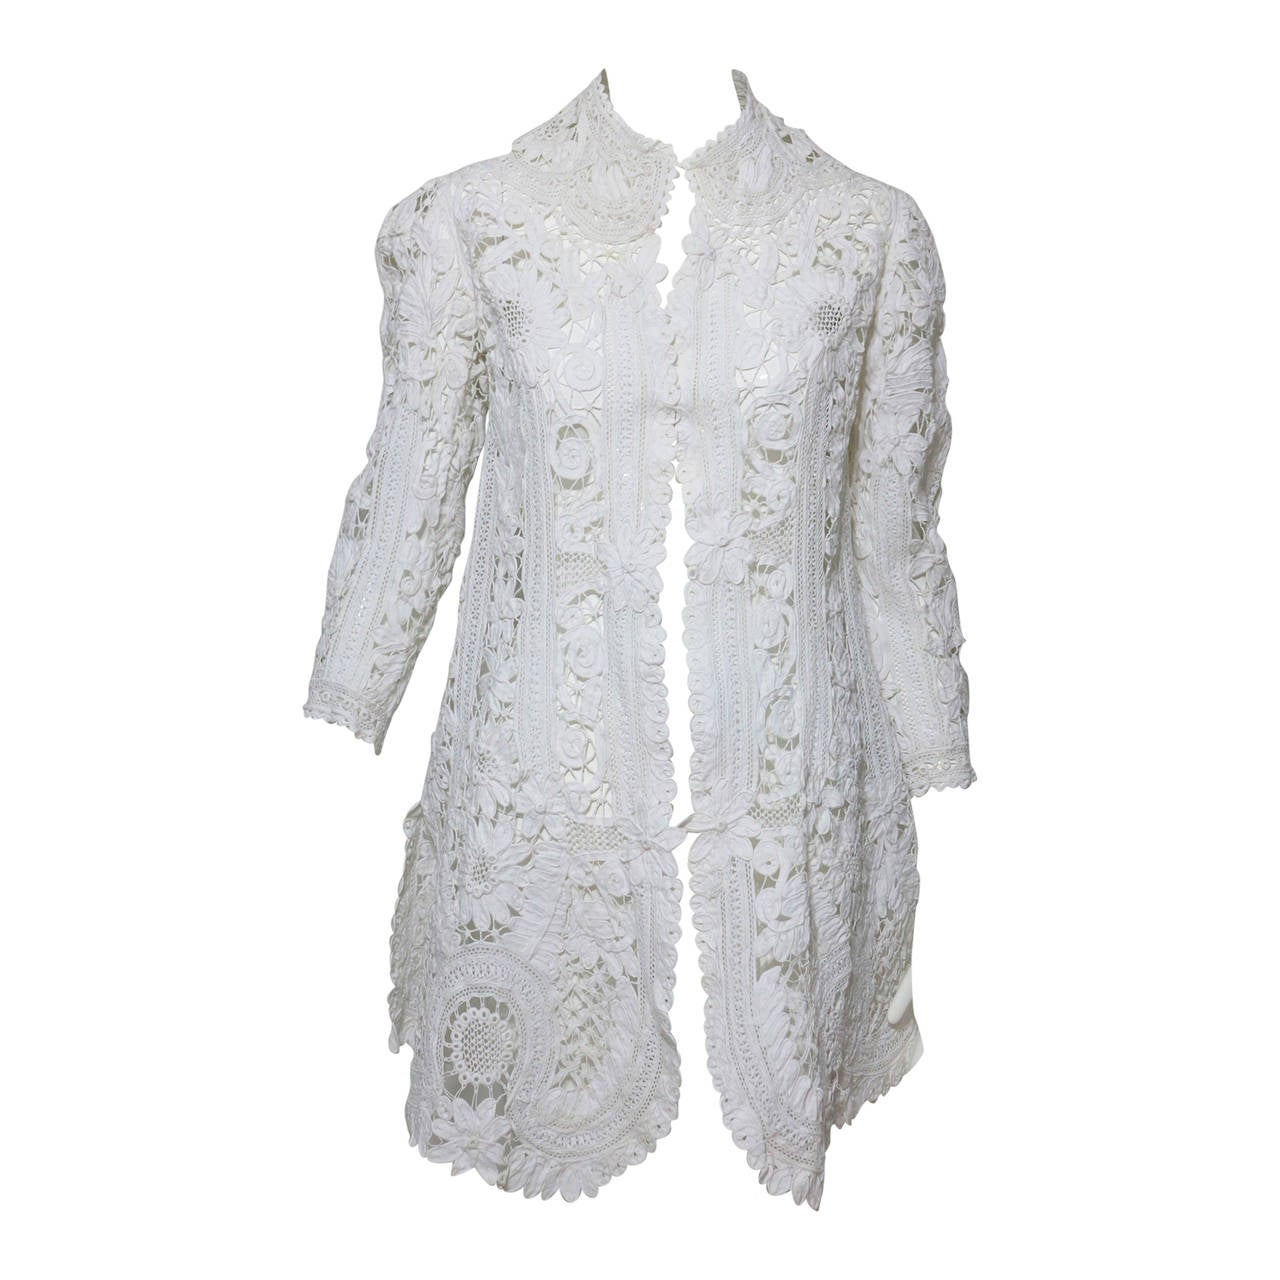 Battenburg white tape lace coat handmade Victorian For Sale